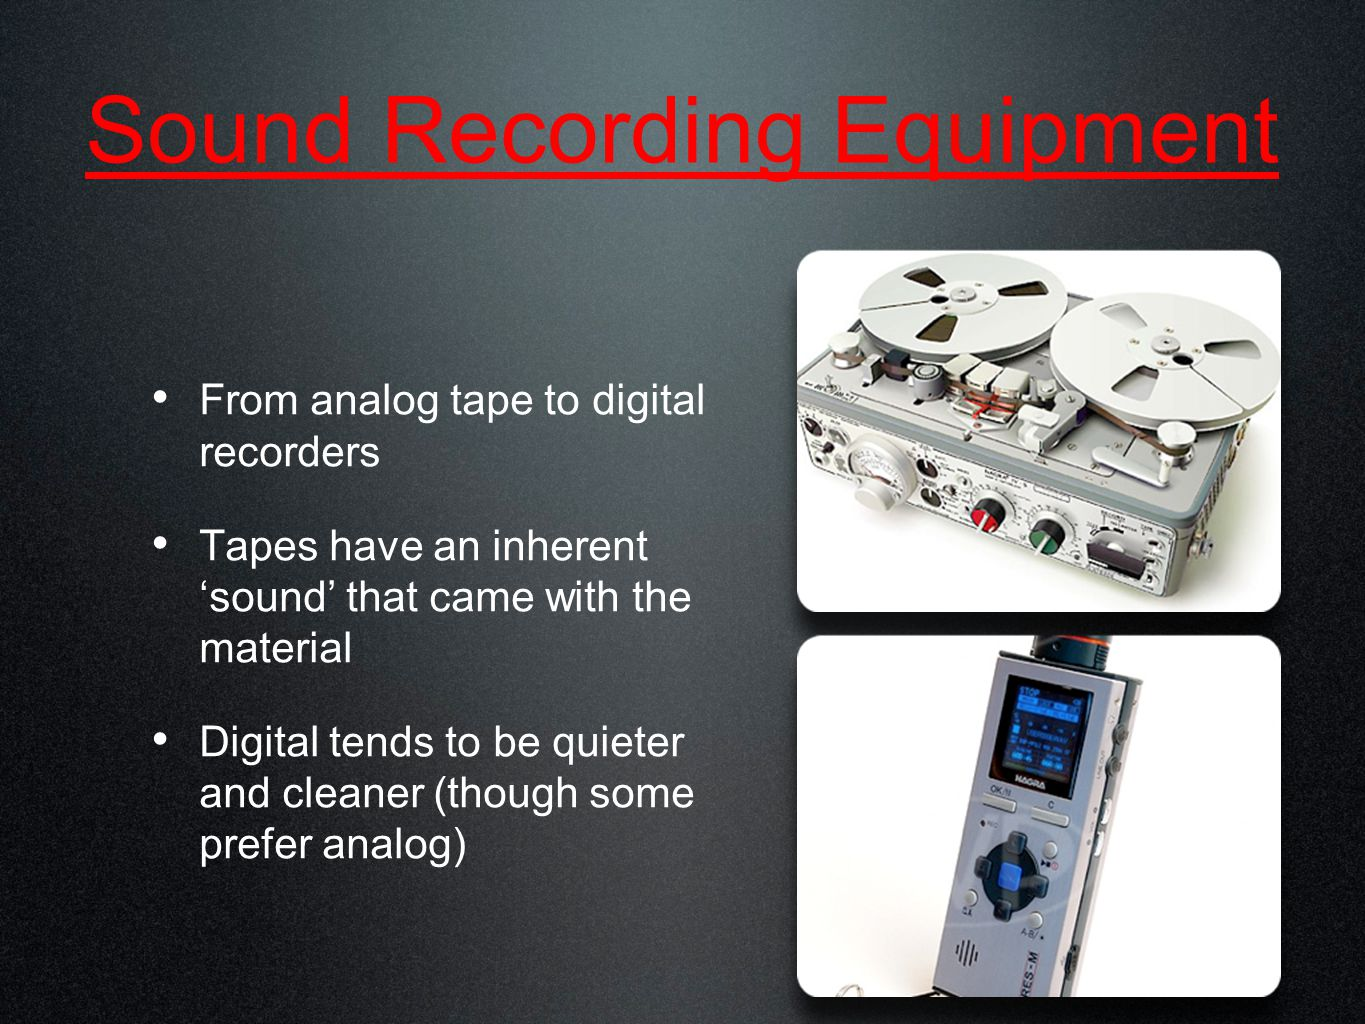 Sound Recording Equipment From analog tape to digital recorders Tapes have an inherent 'sound' that came with the material Digital tends to be quieter and cleaner (though some prefer analog)